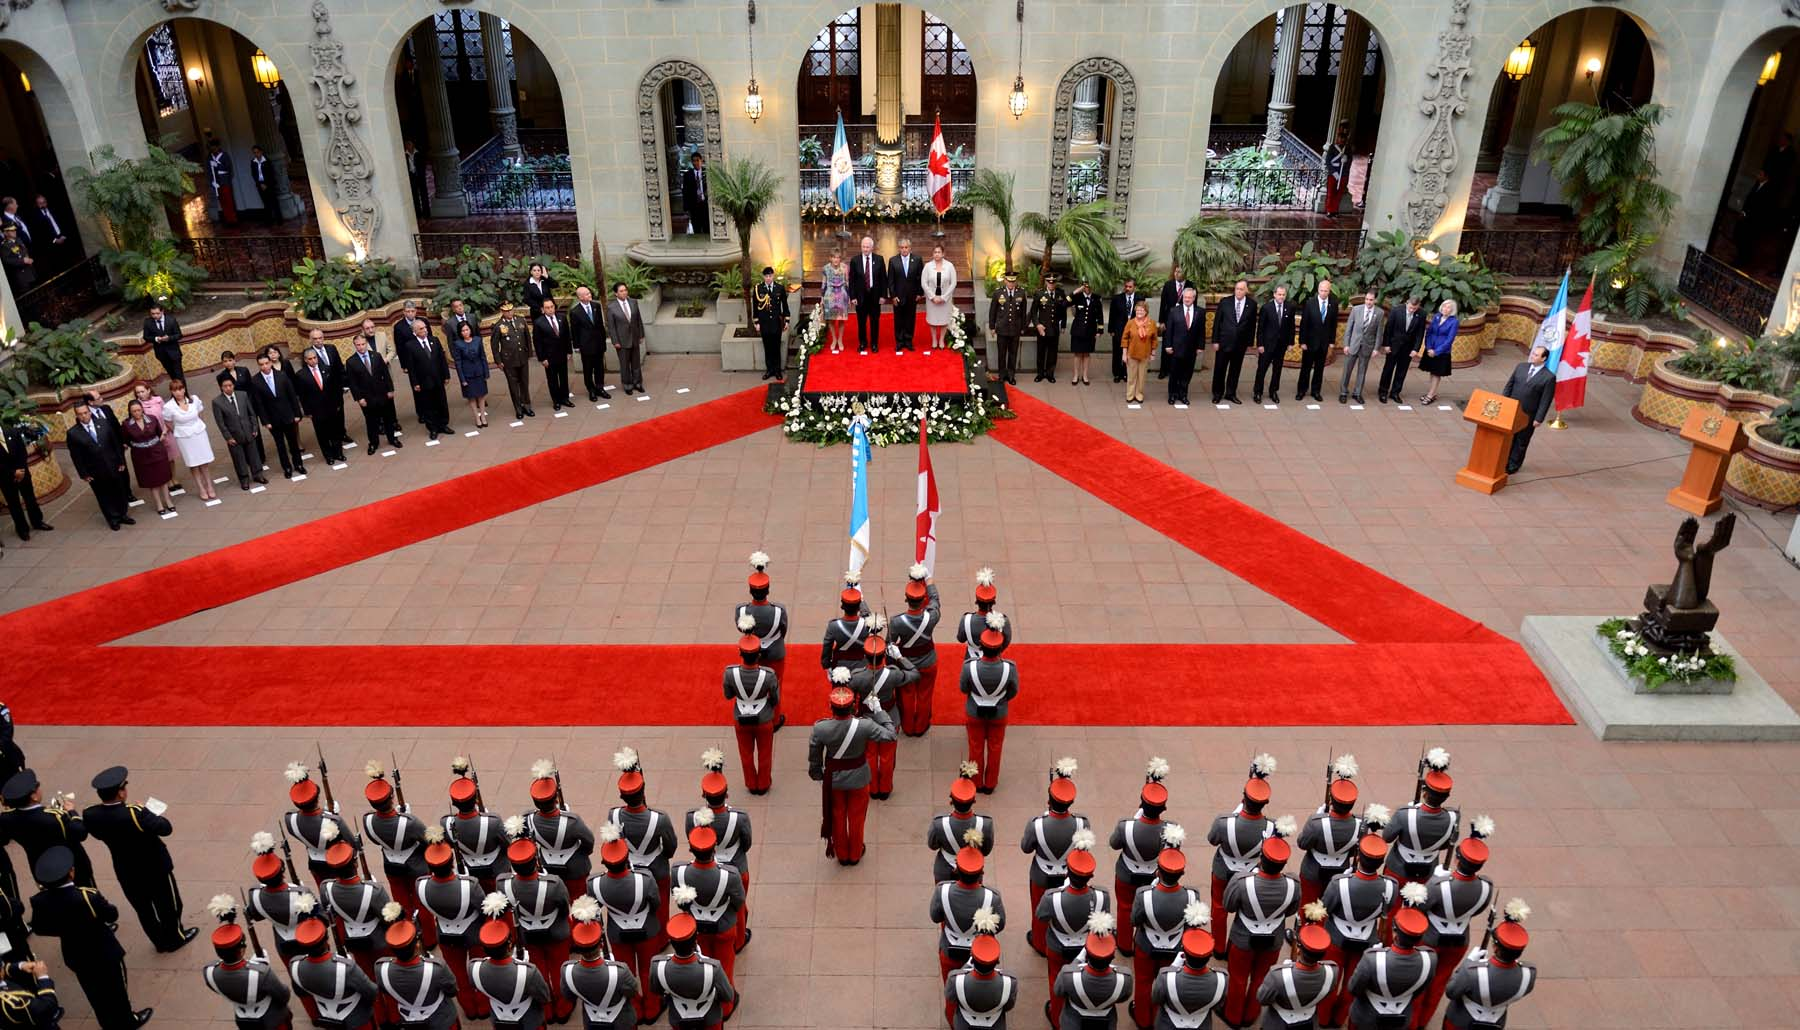 The ceremony was held at National Palace, Patio de la Paz.